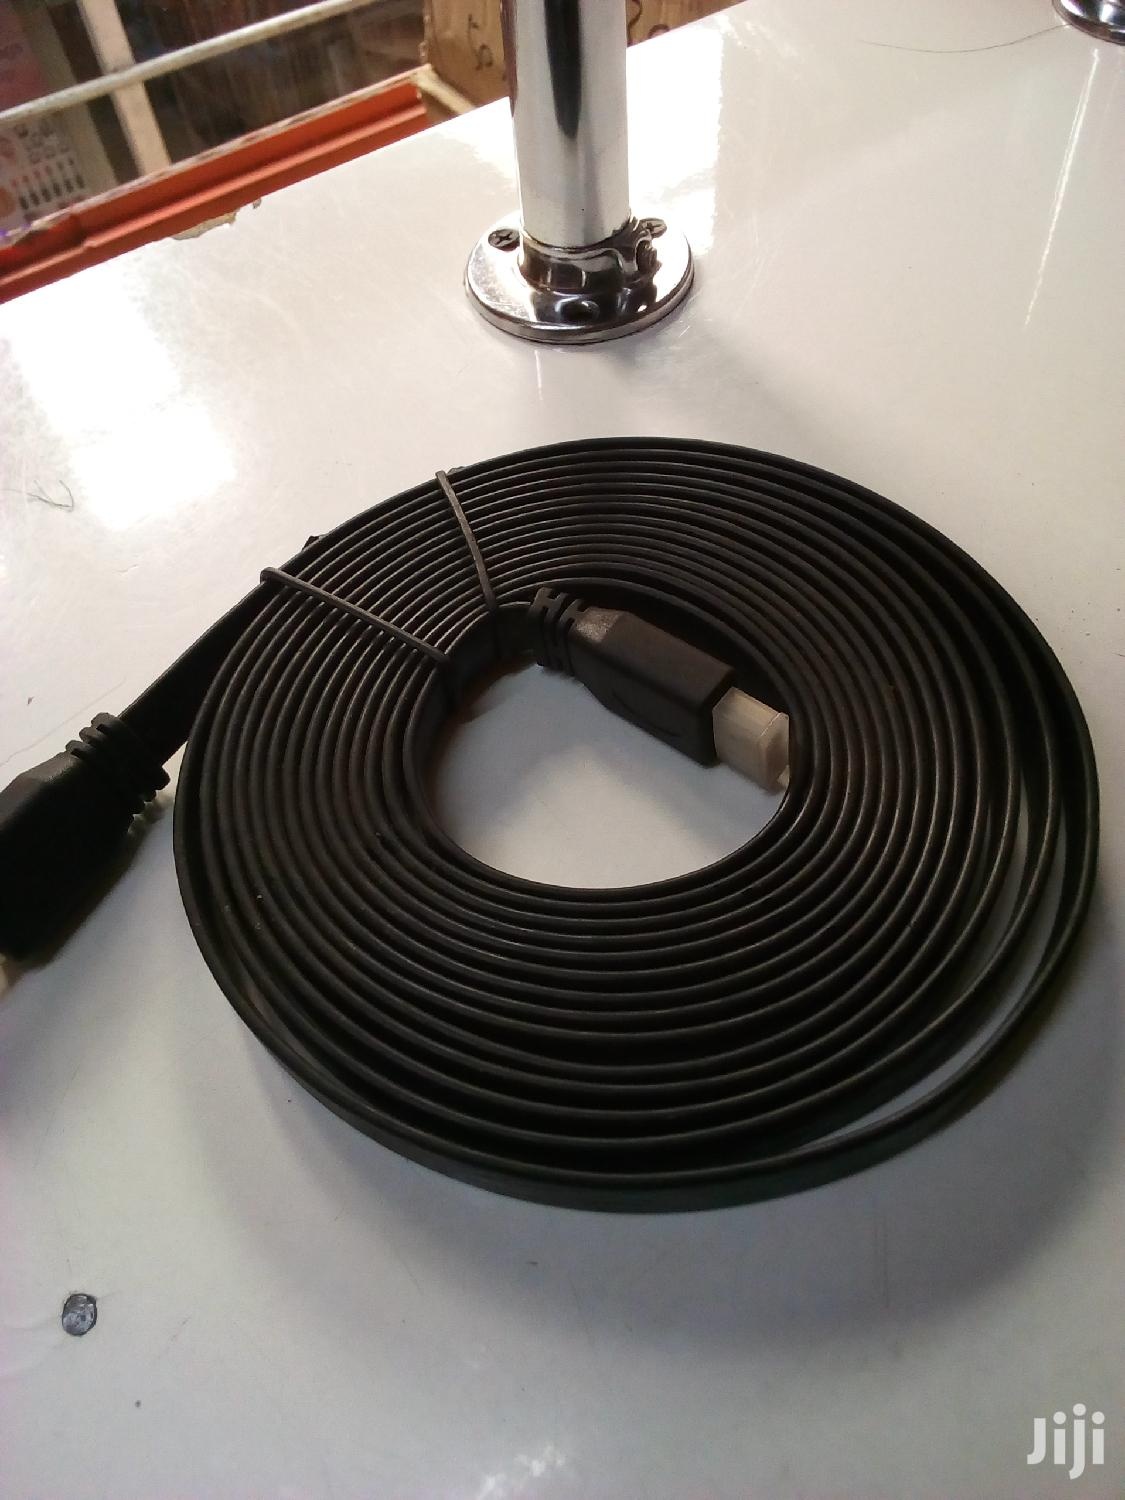 Archive: 5m Hdmi Cable